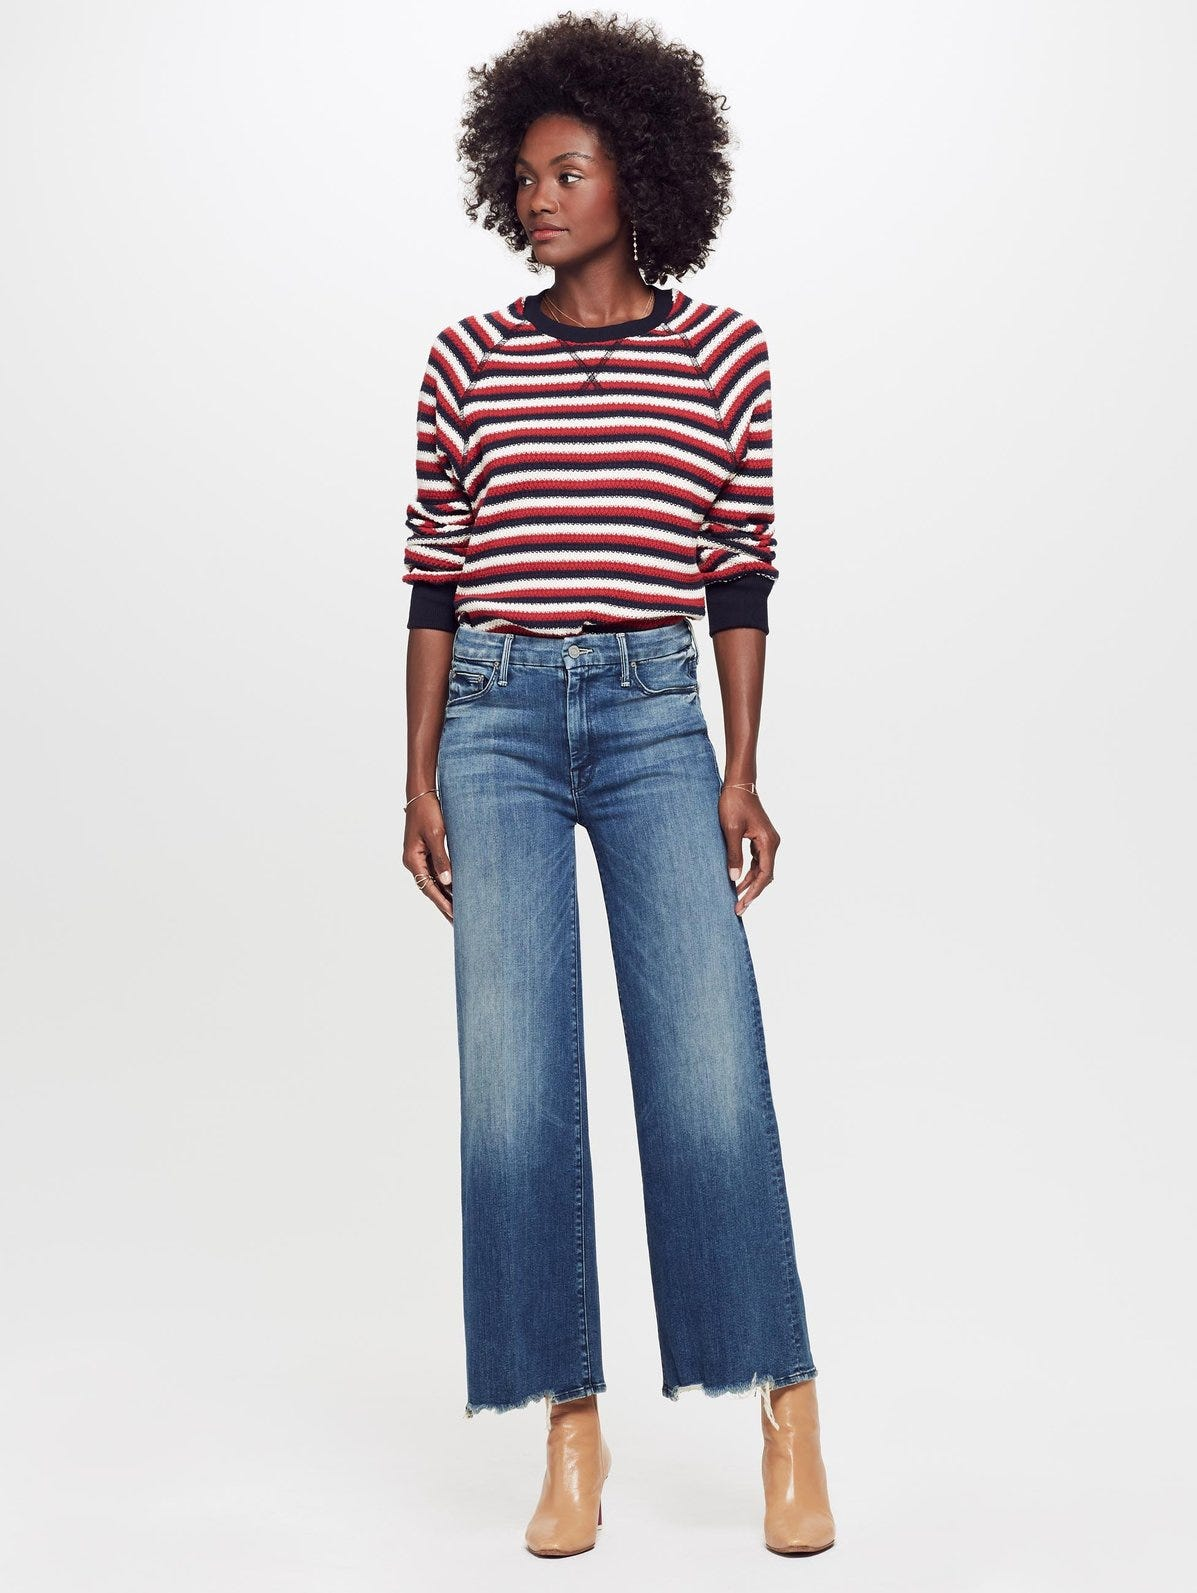 5d4800e9c5 Wide Leg Jean Styles For Women Any Height   Size 2019